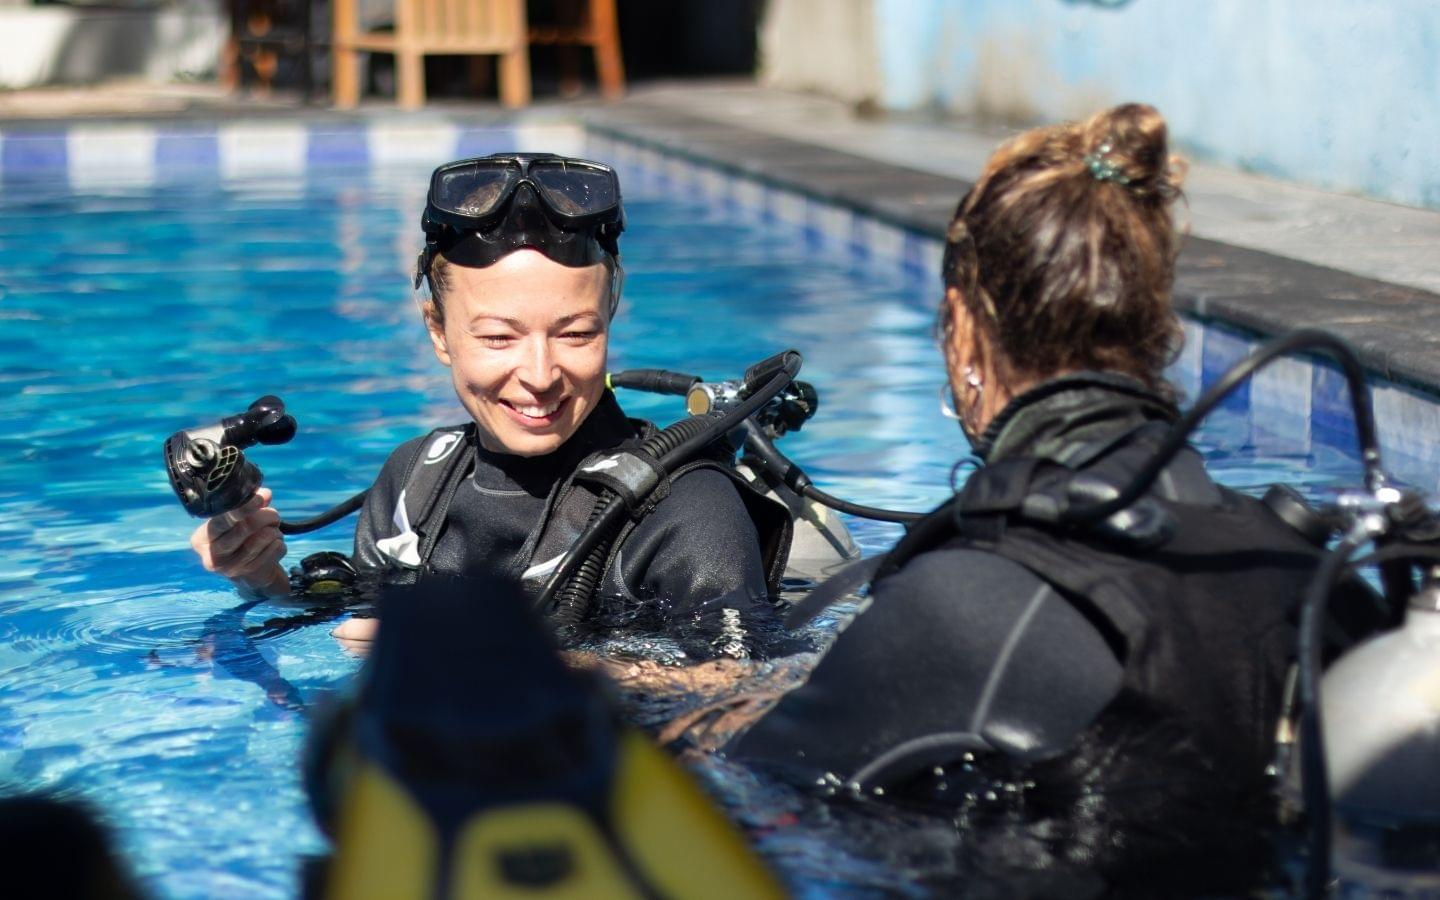 Complete guide to become a Scuba Diving Instructor